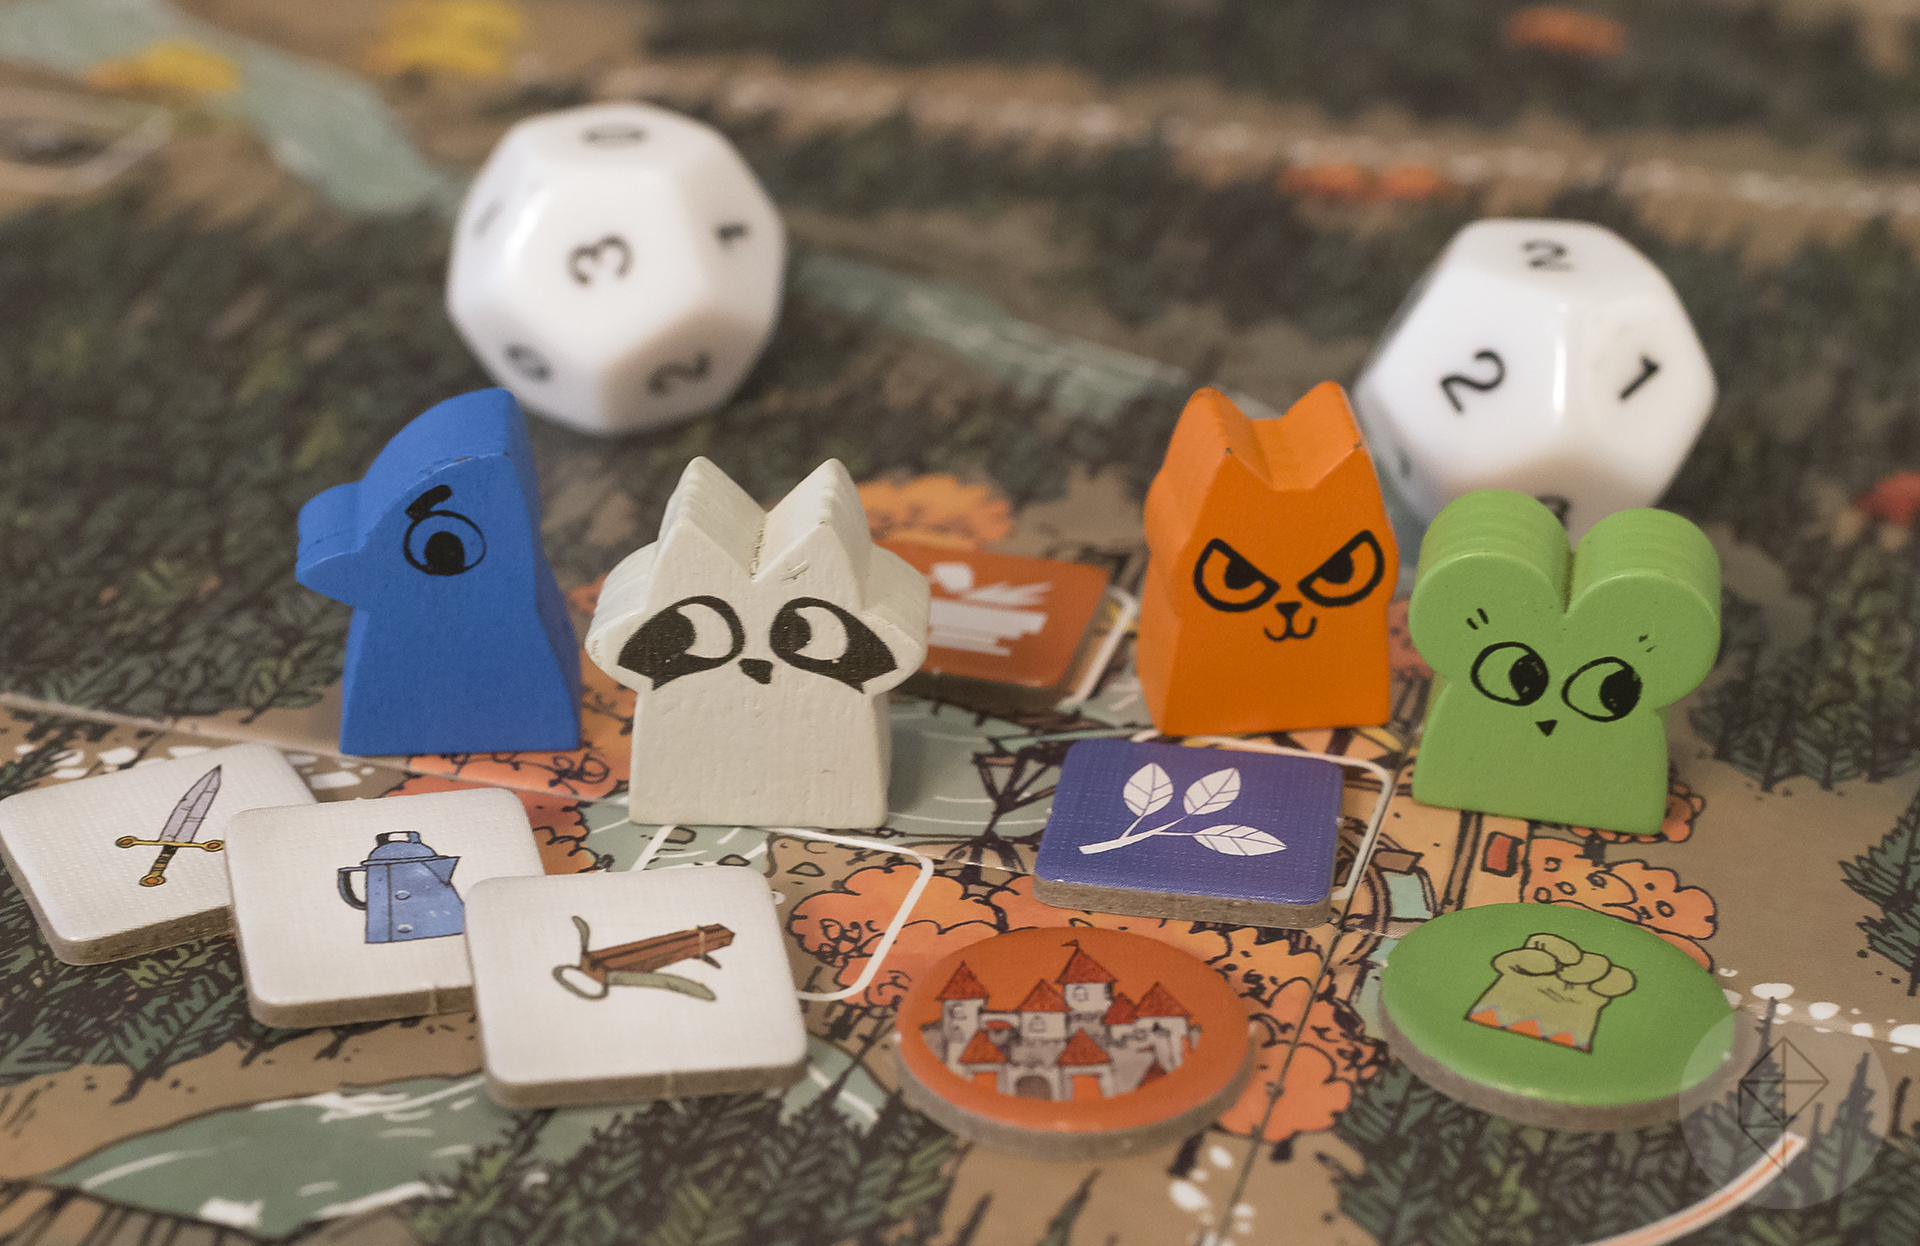 The best strategy board games to mix up game night